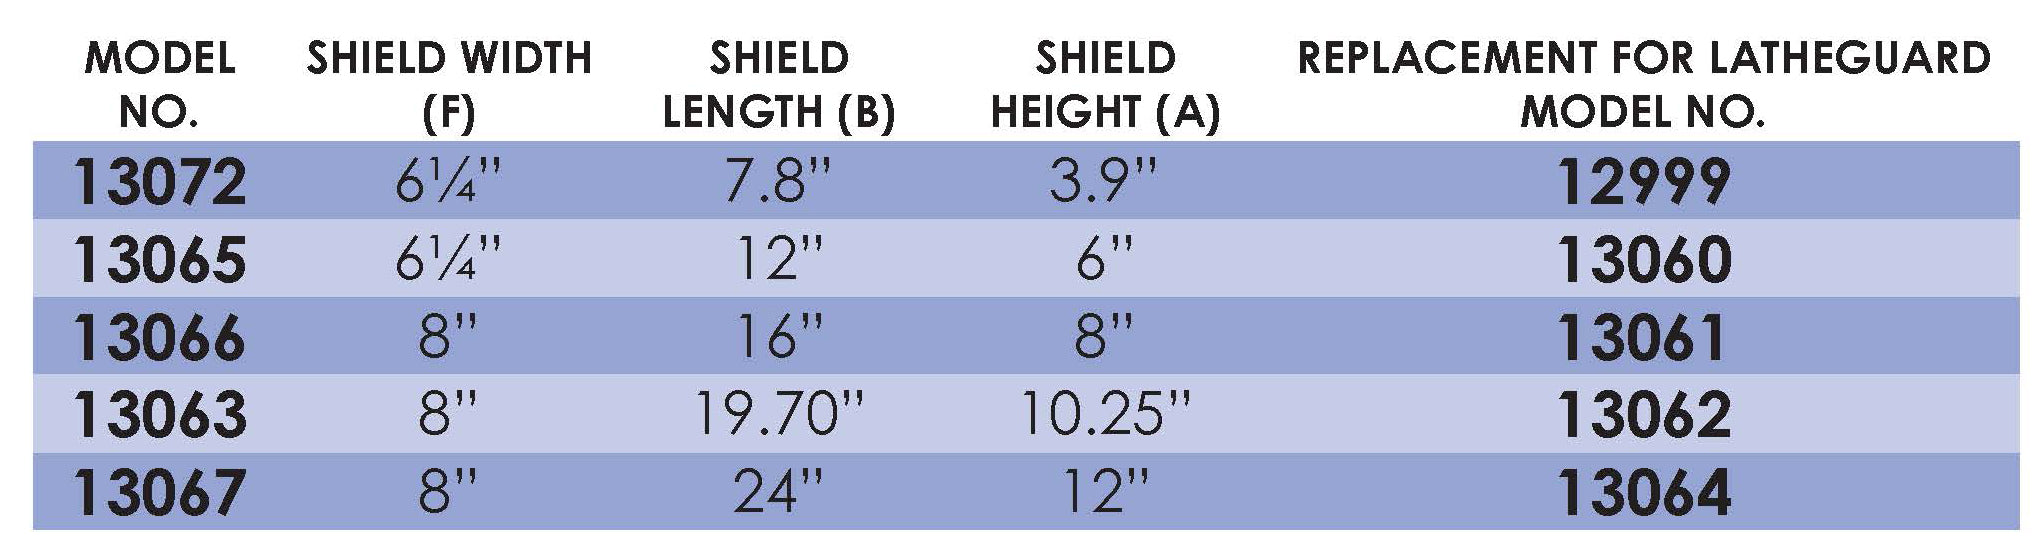 Replacement Shield - Large